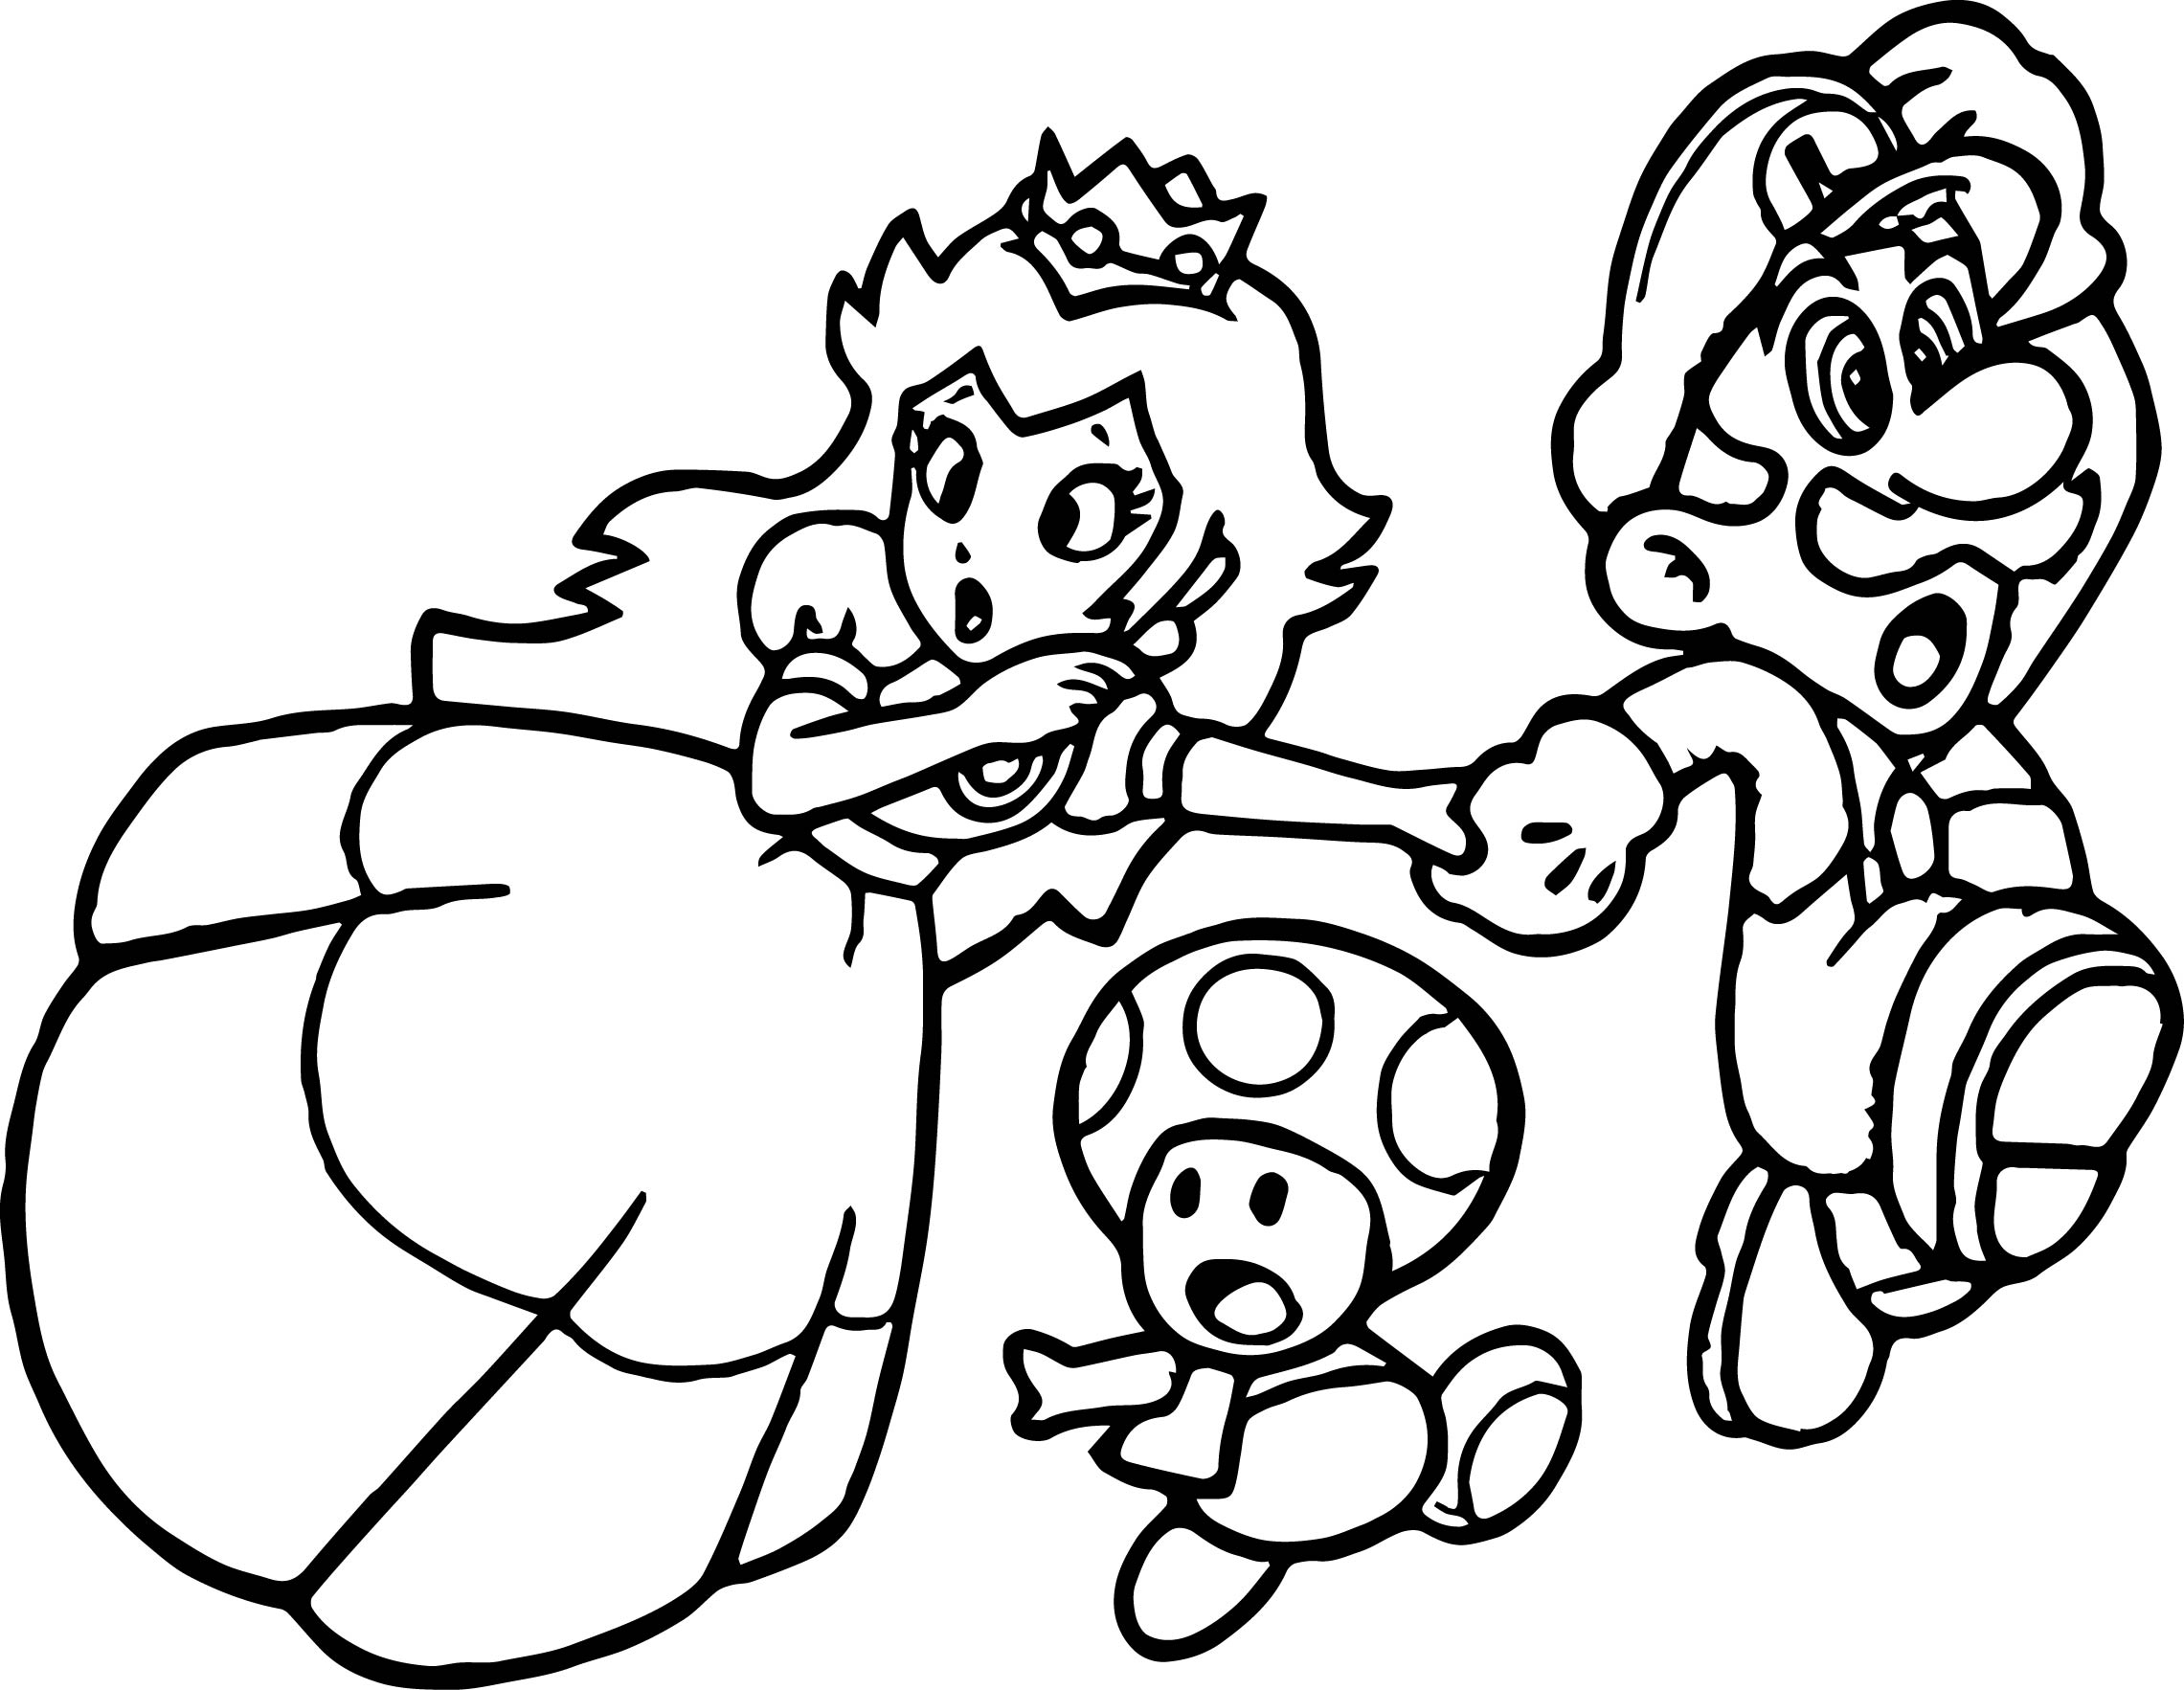 coloring pages of mario kart wii mario kart 8 coloring pages free download best mario wii pages of mario kart coloring